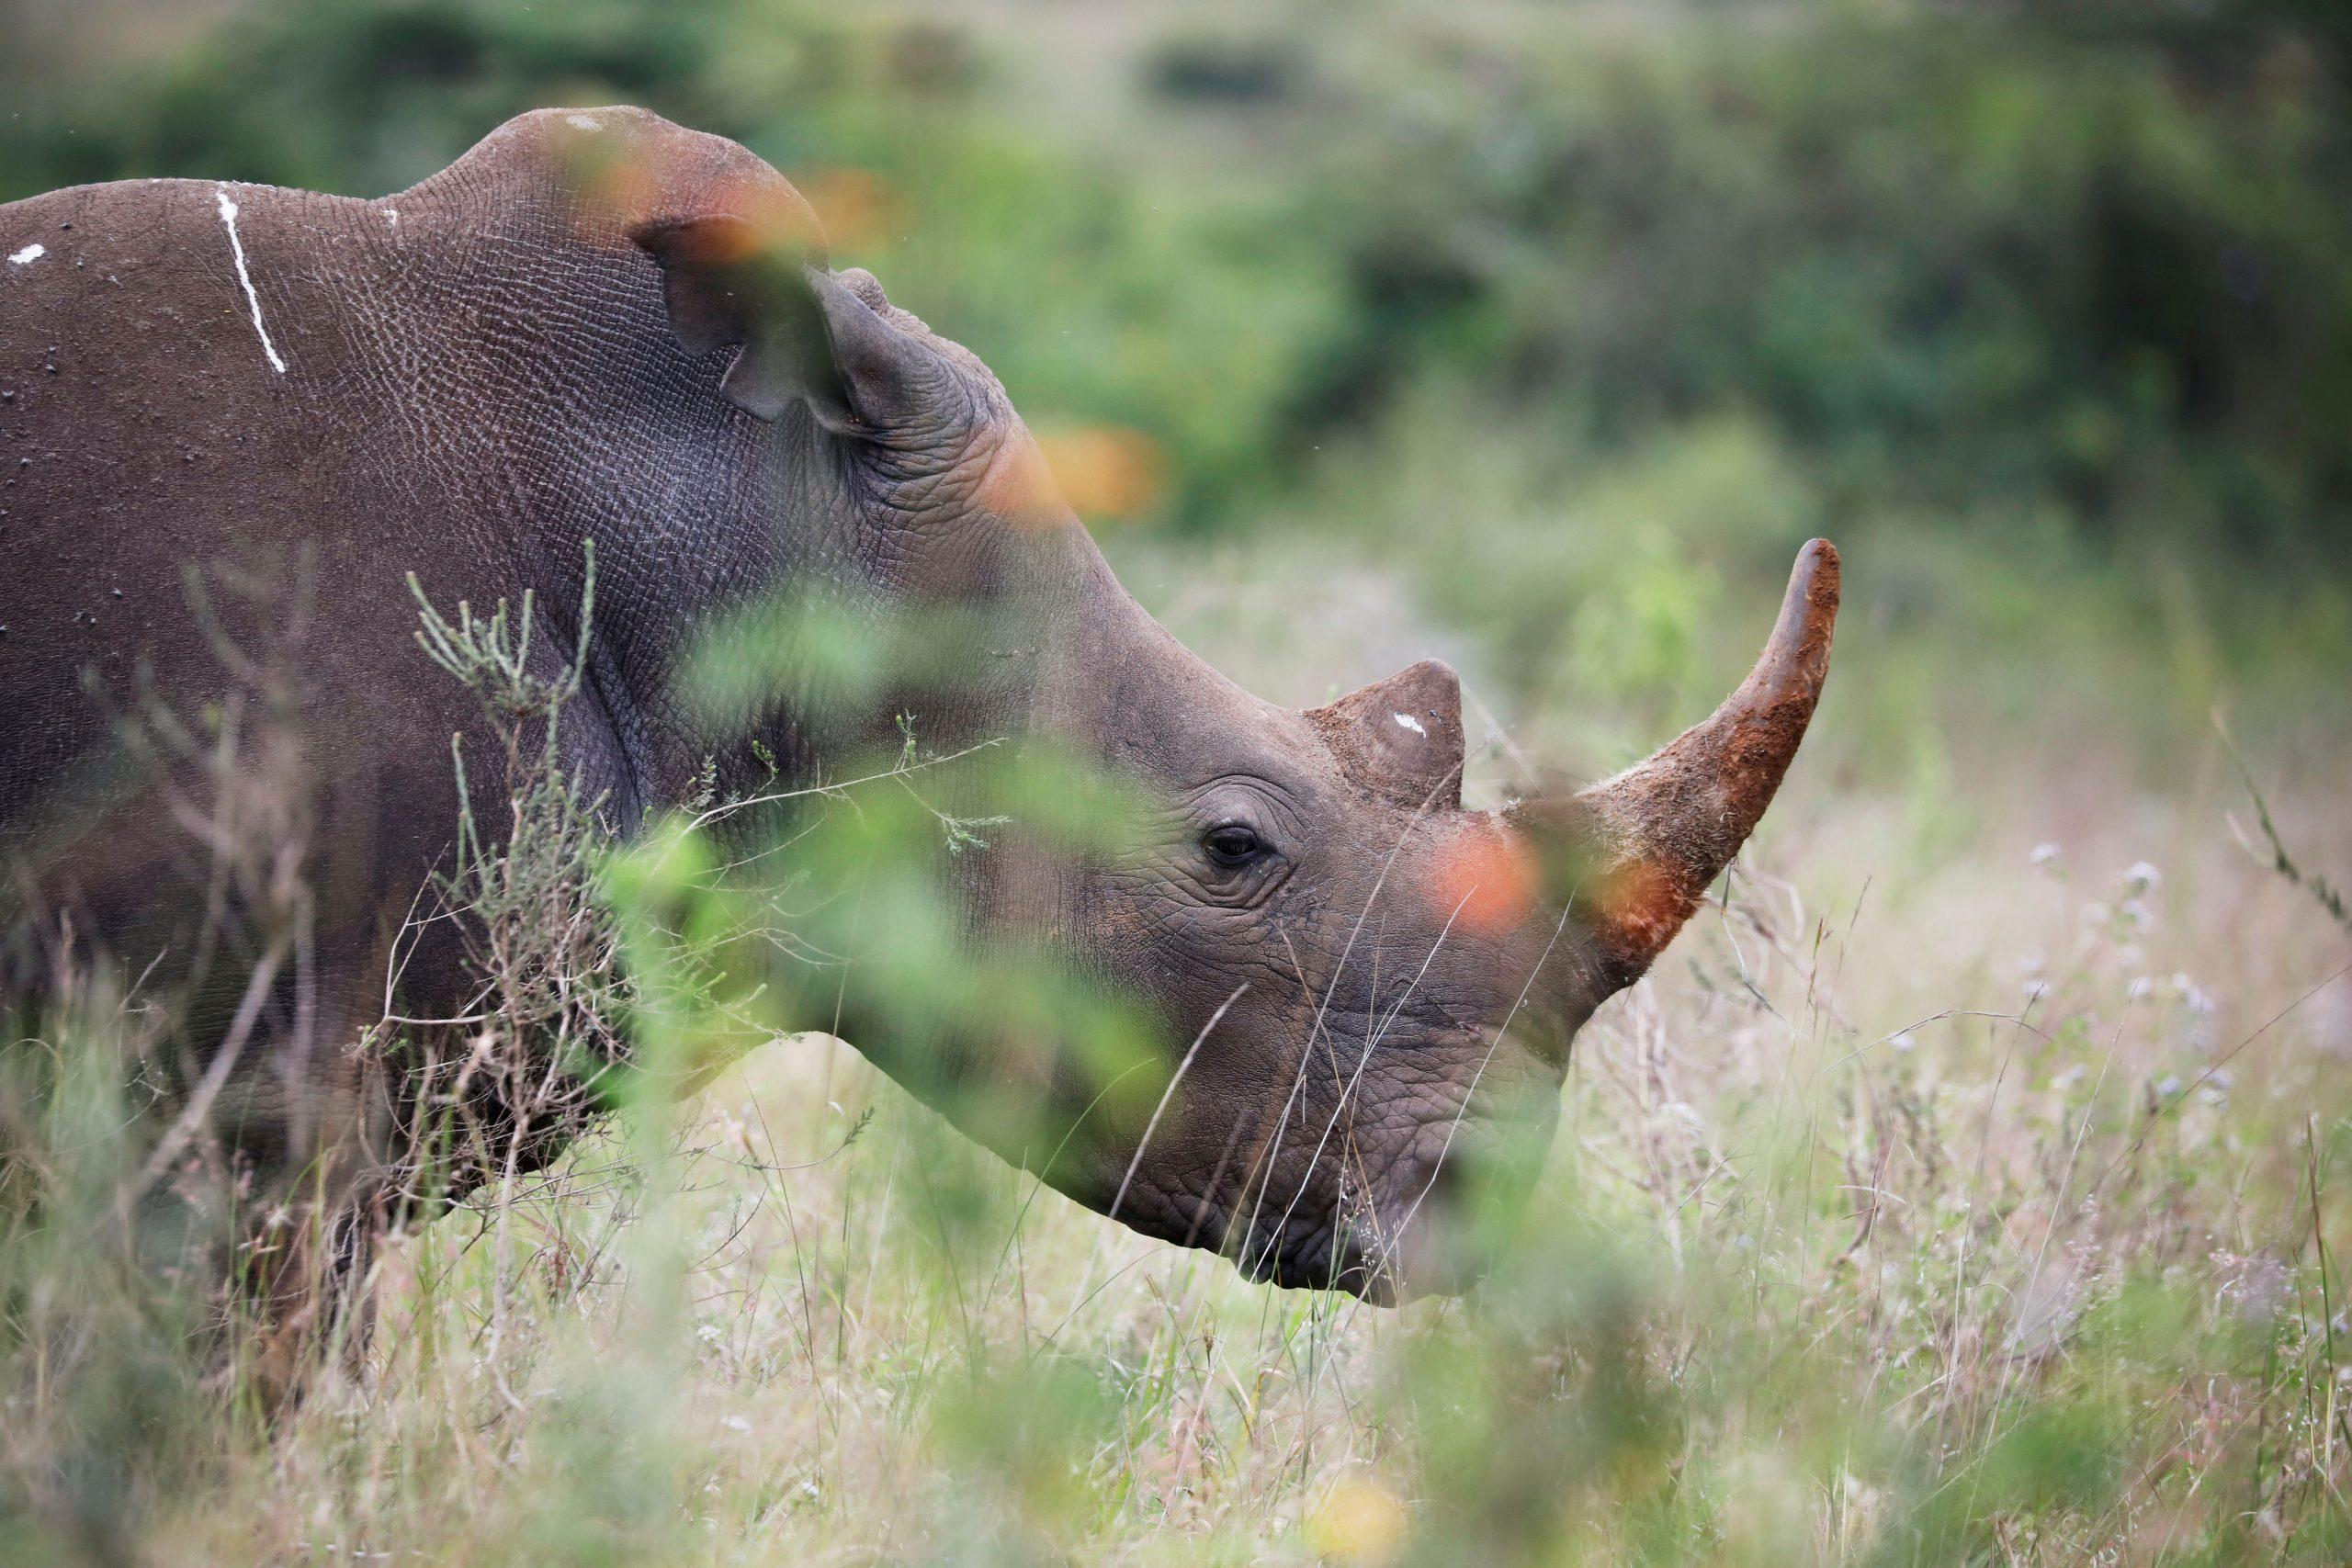 Namibia sees steady downward trend in rhino and elephant poaching